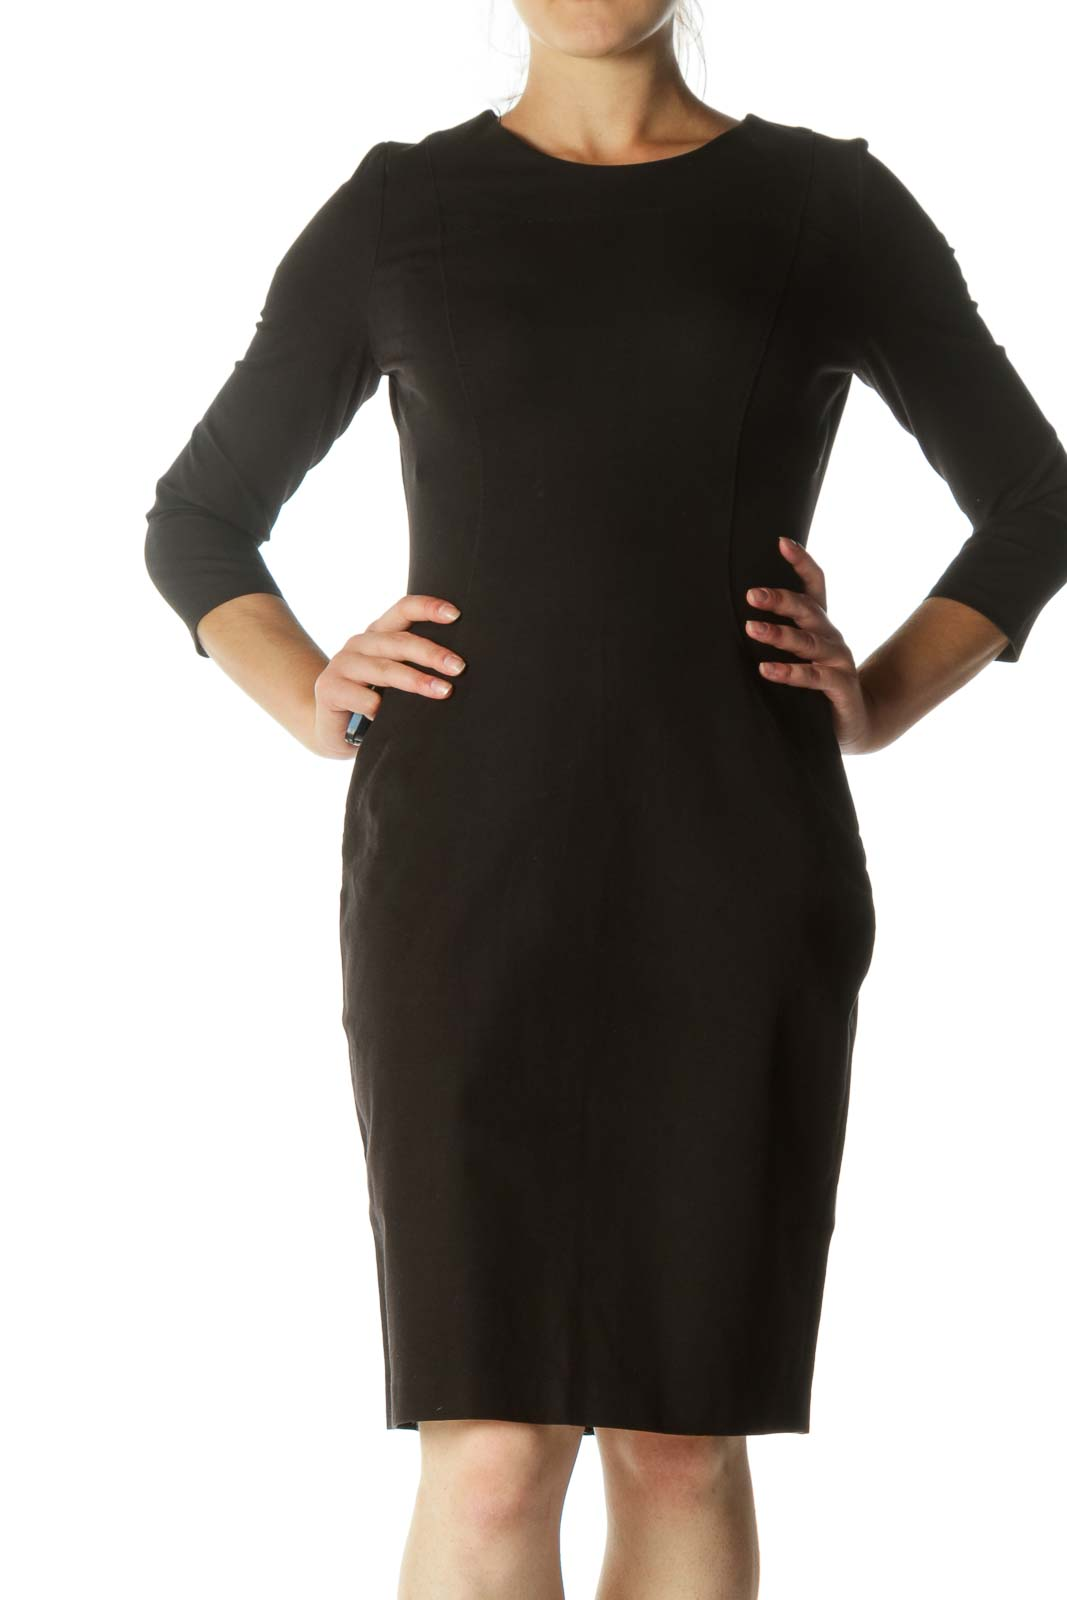 Black Round Neck Stitching Detail Long Sleeve Stretch Work Dress